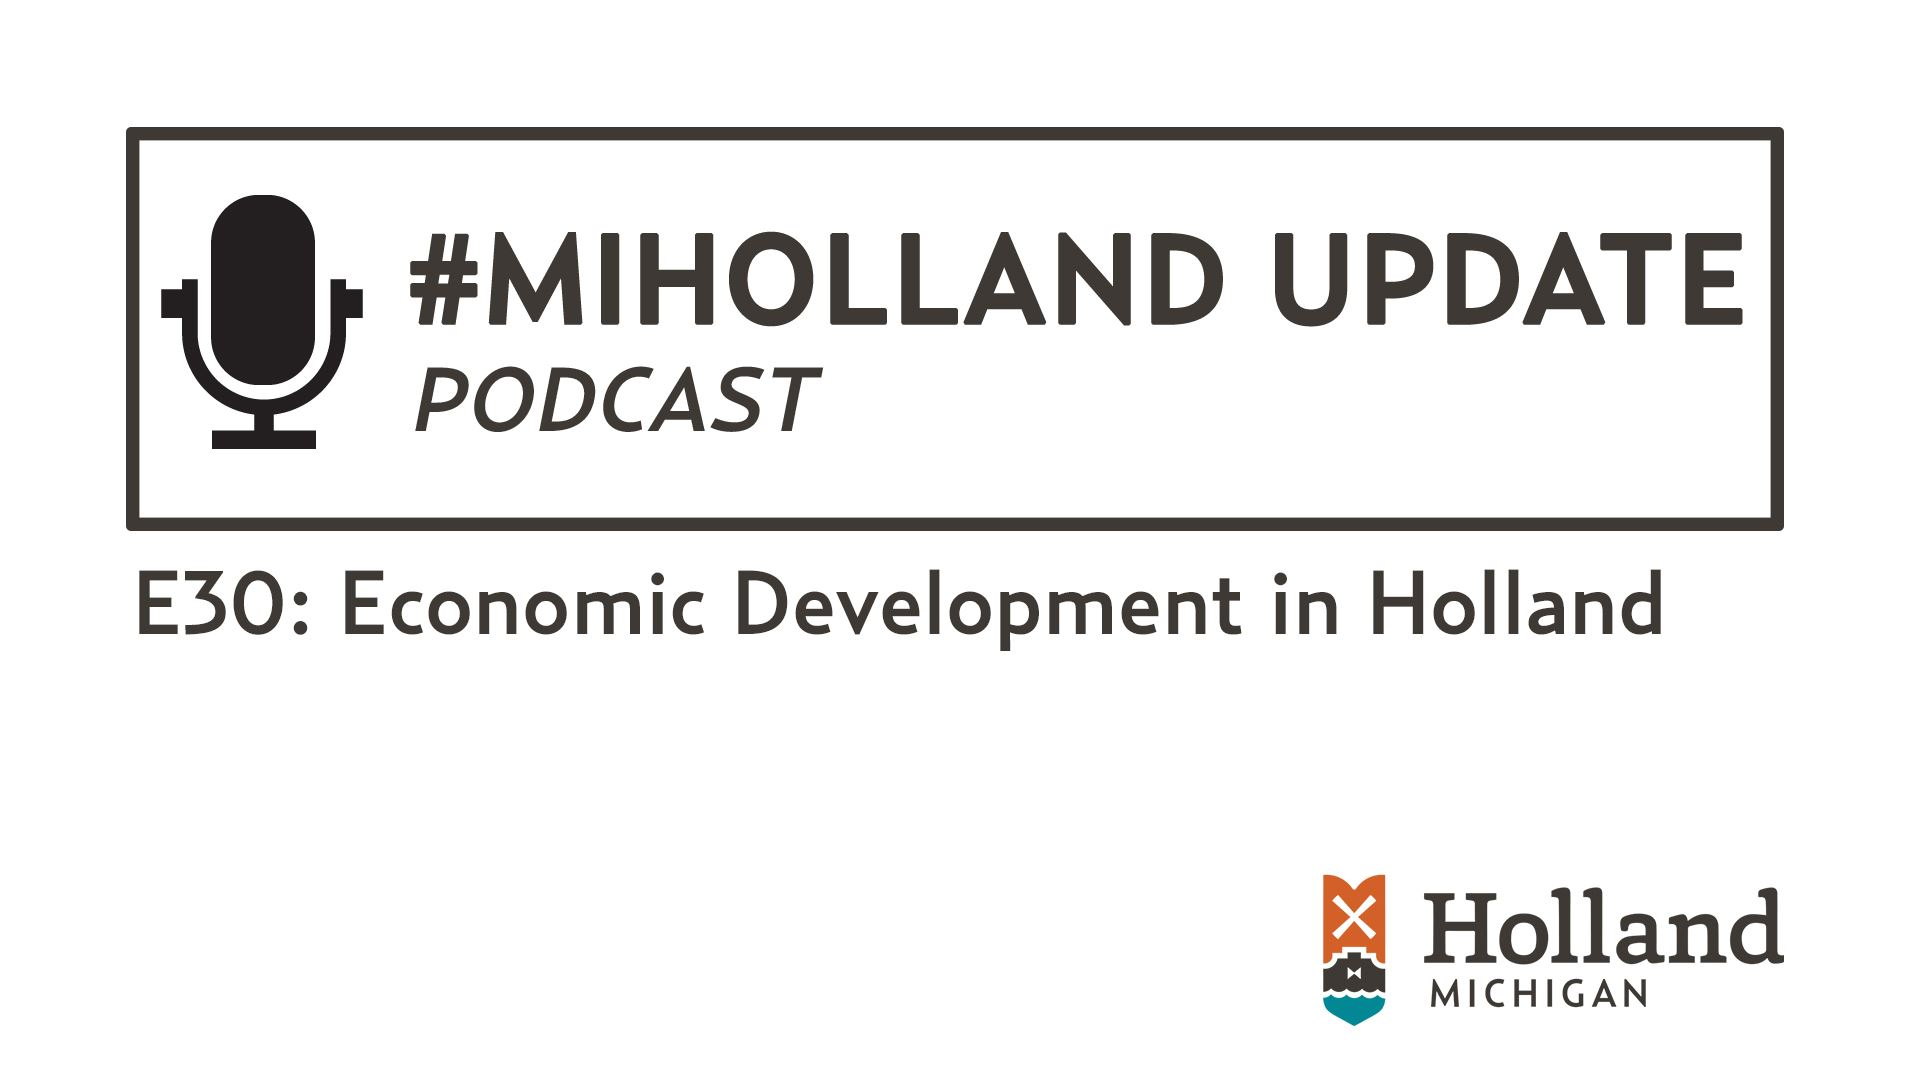 MiHolland Update Podcast Episode 30